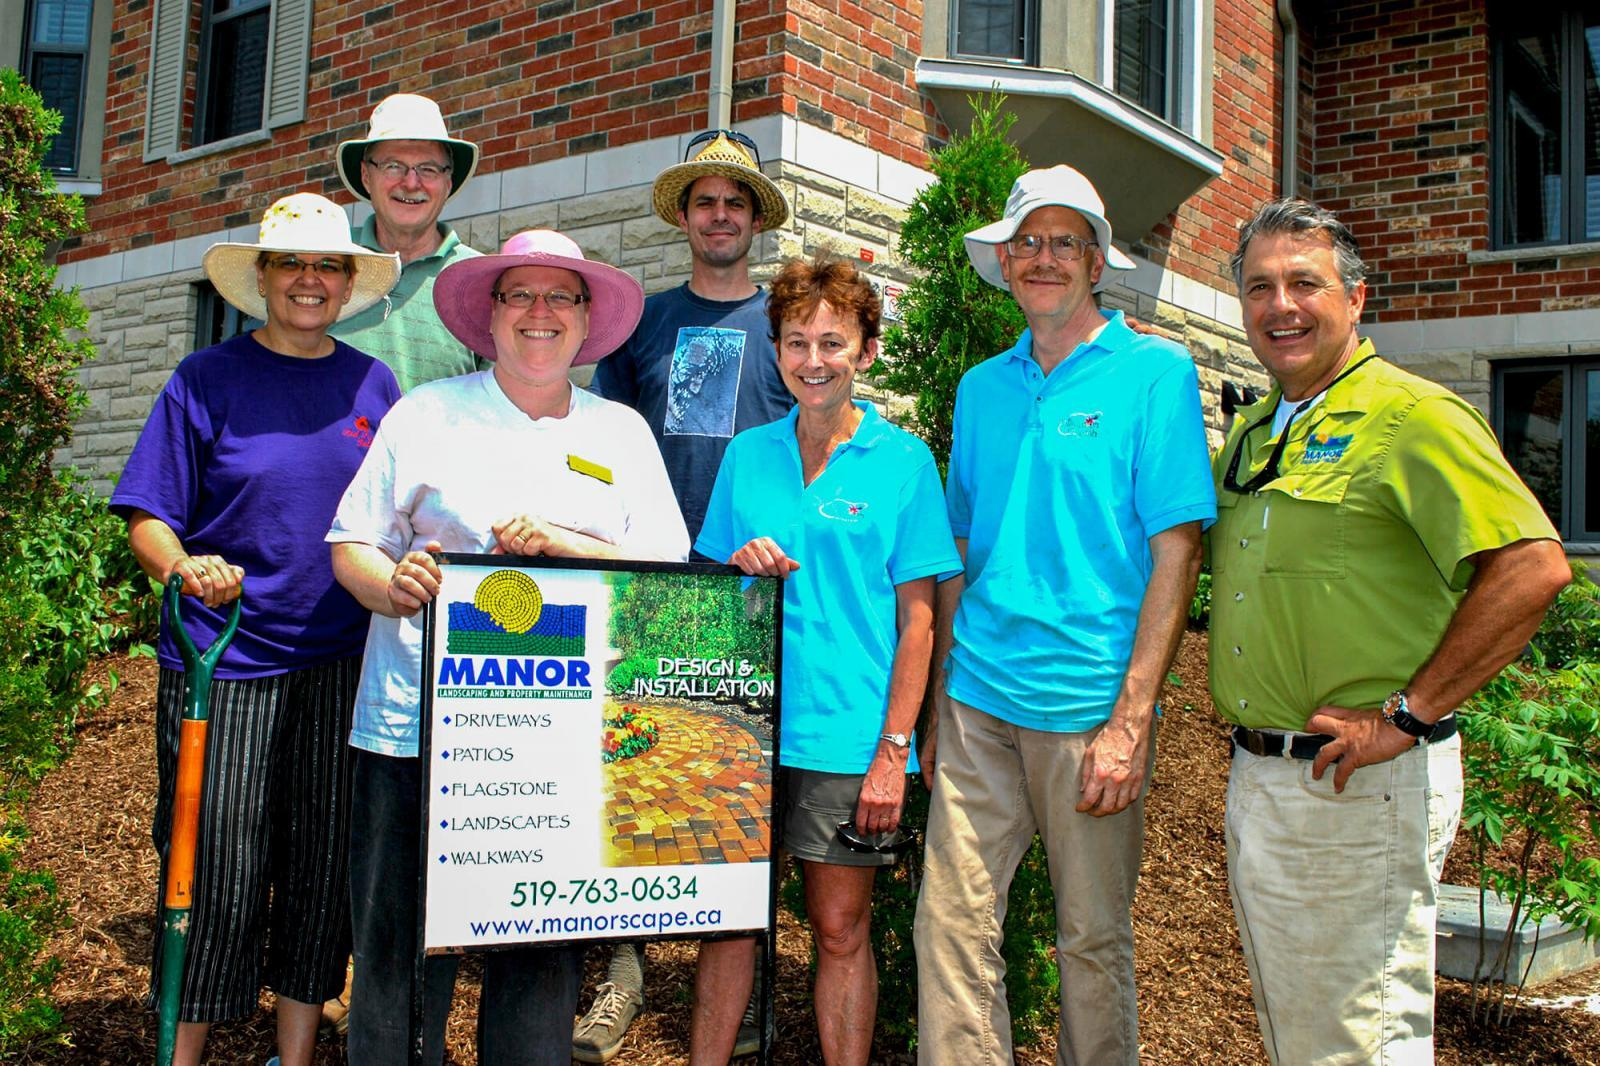 Volunteers praise Carlo Mann (right), owner of Manor Landscaping, for his support to beautify the grounds at the Guelph hospice.